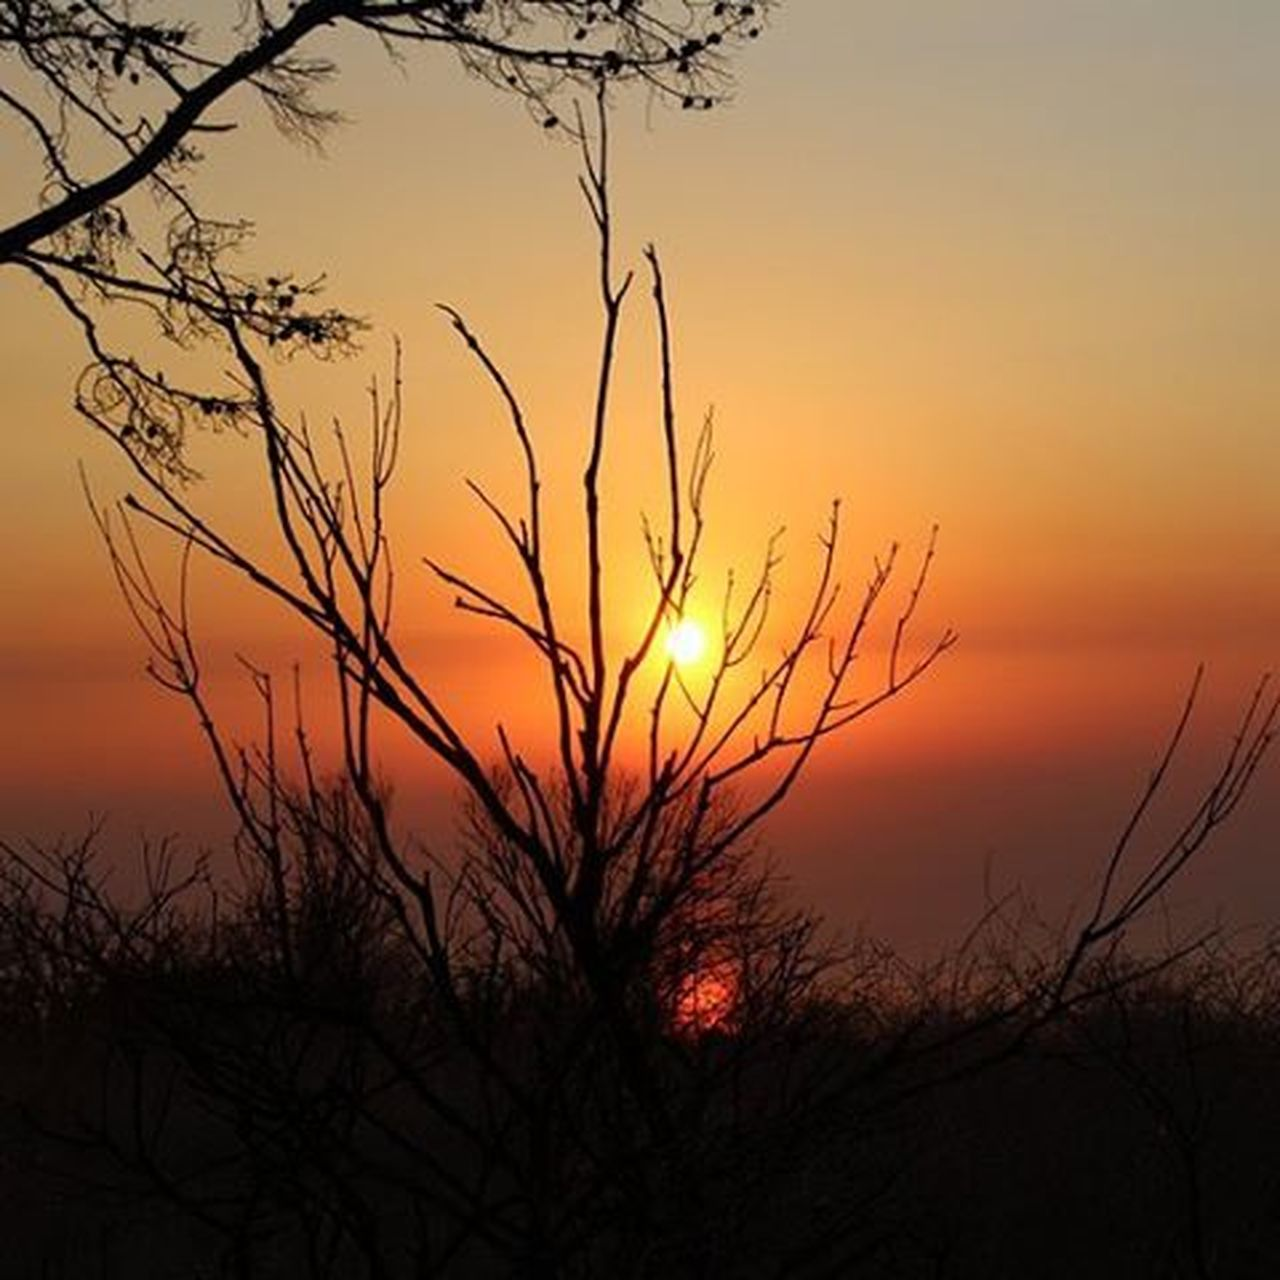 sunset, tree, nature, scenics, silhouette, sky, vibrant color, orange color, outdoors, dusk, tranquil scene, multi colored, landscape, beauty in nature, sun, plant, travel destinations, no people, sunlight, beauty, morning, travel, backgrounds, tranquility, bare tree, rural scene, desert, sea, saturated color, branch